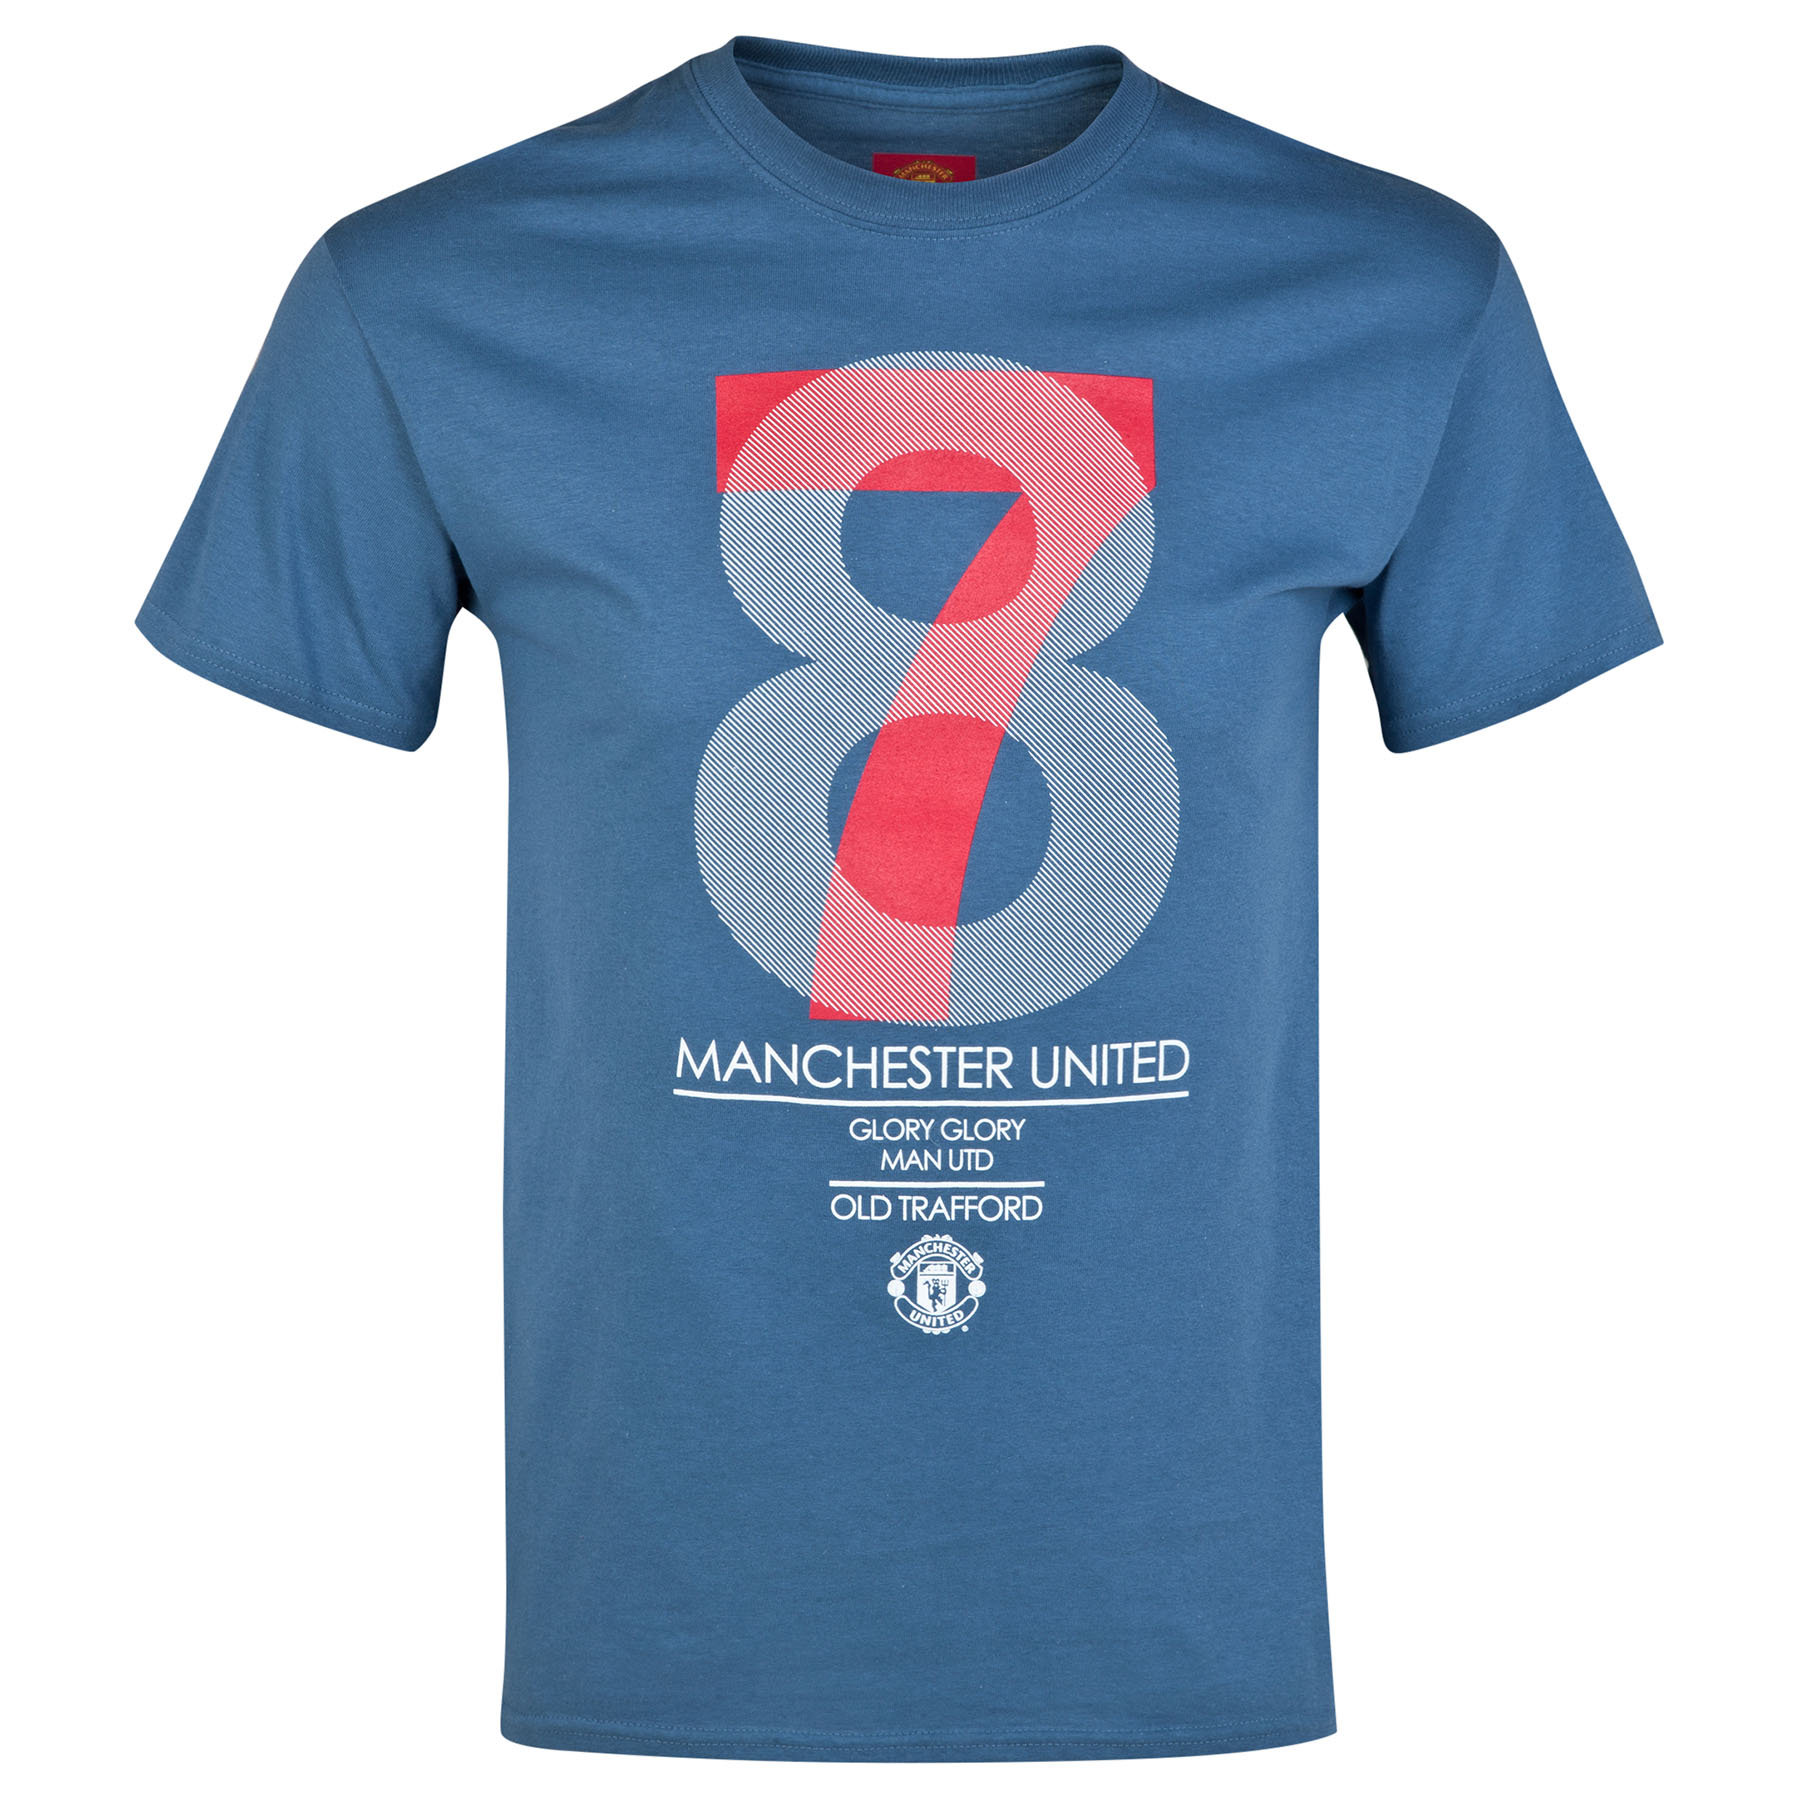 Manchester United 78 Graphic T-Shirt - Metro Blue - Boys